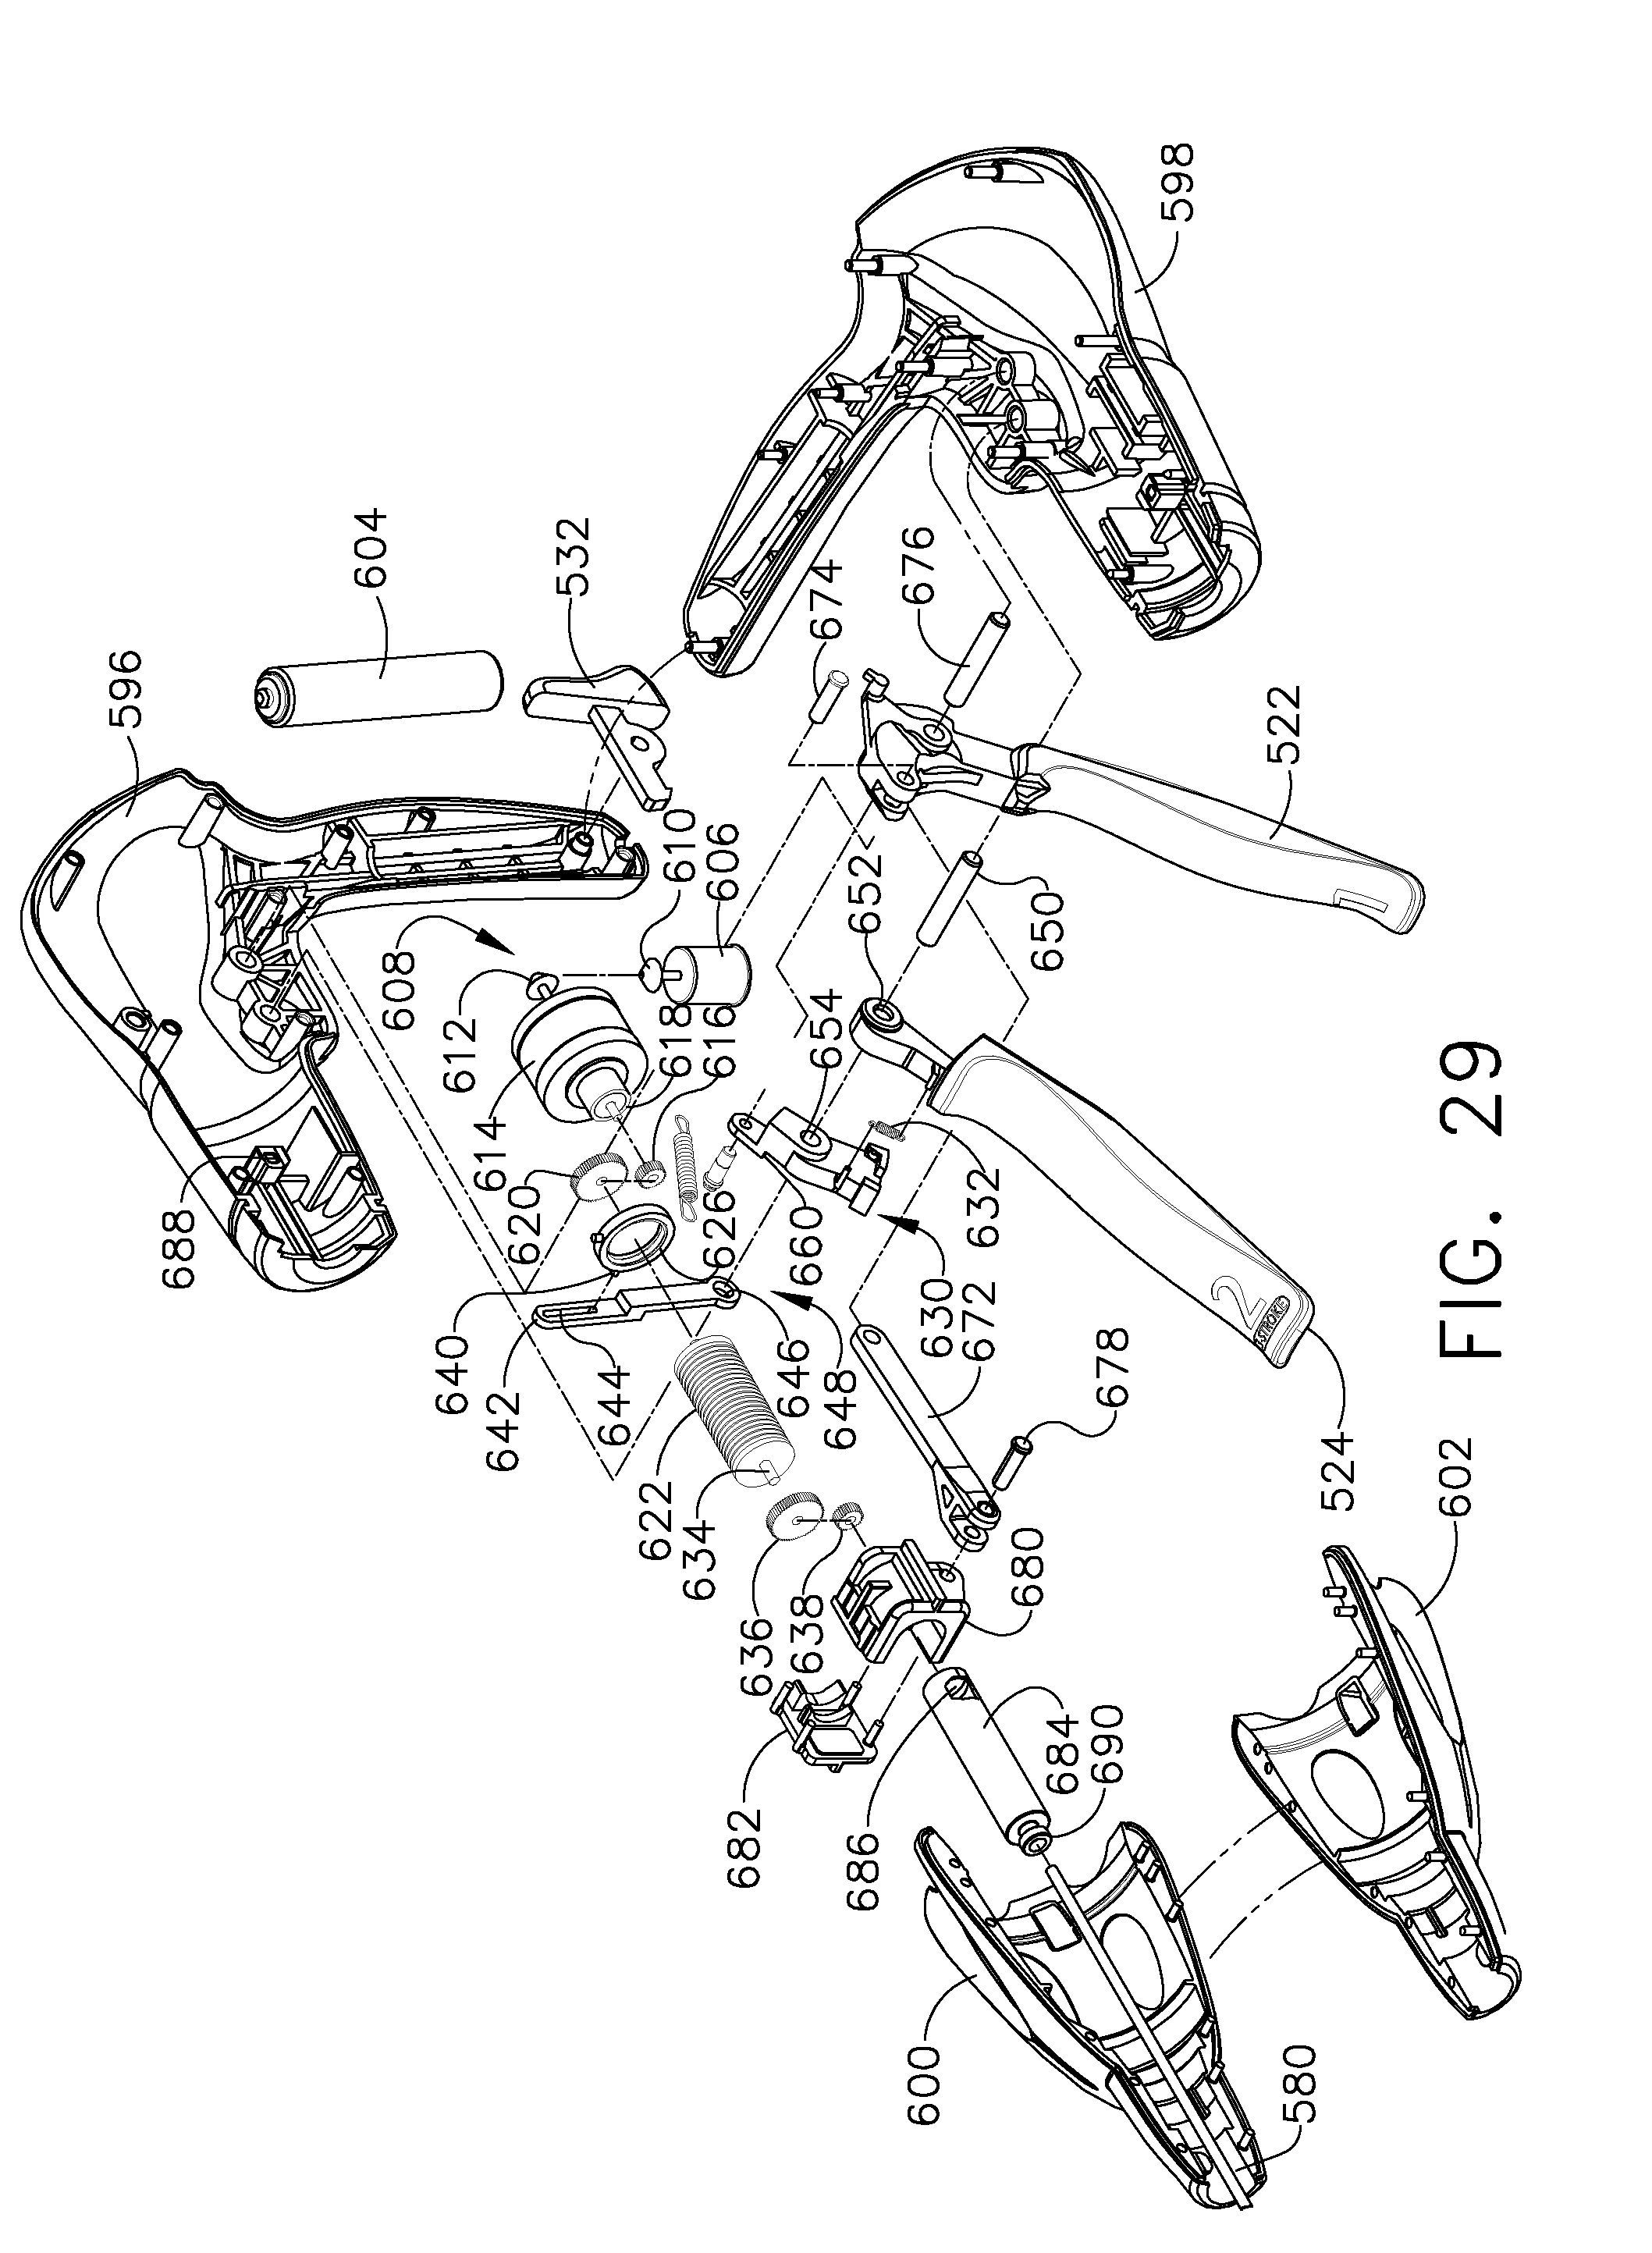 us8632535b2 interlock and surgical instrument including same 1967 Honda S800 us8632535b2 interlock and surgical instrument including same patents